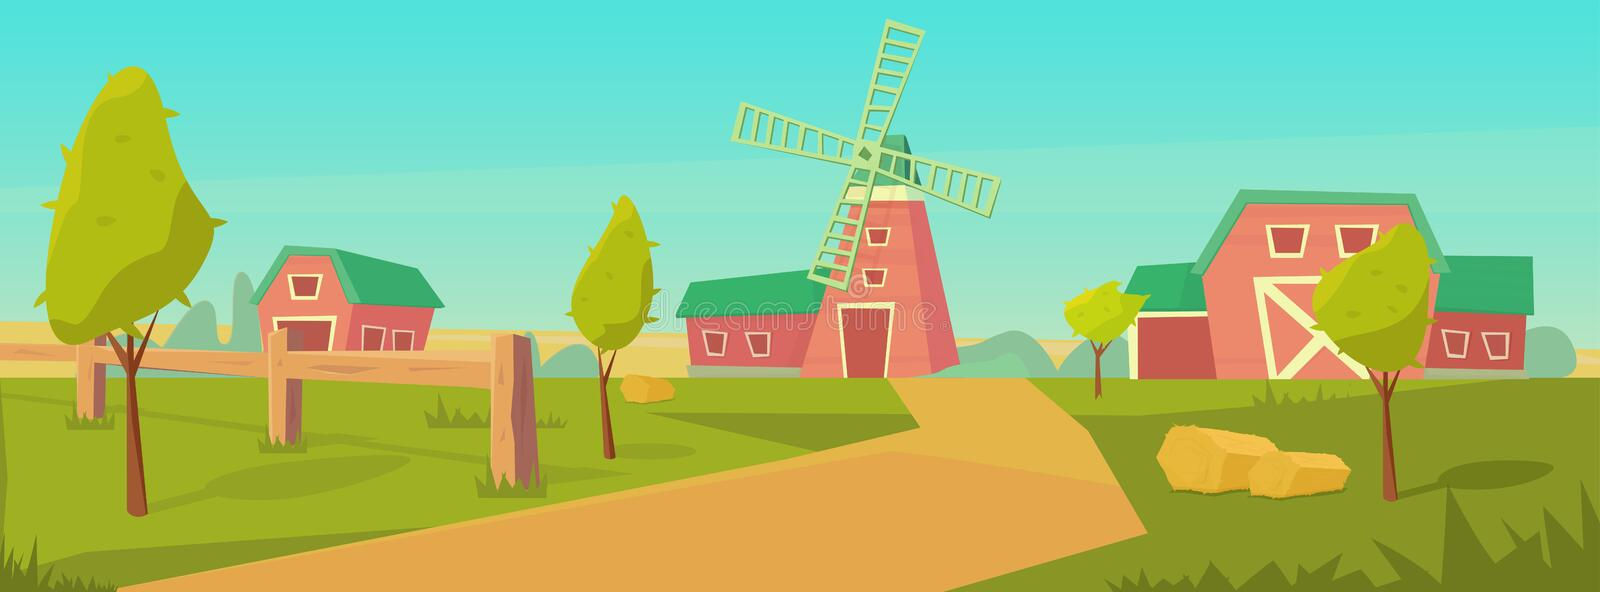 Agriculture. Farm rural landscape with red barn, house and ranch, water tower and haystack. Vector flat illustration royalty free illustration